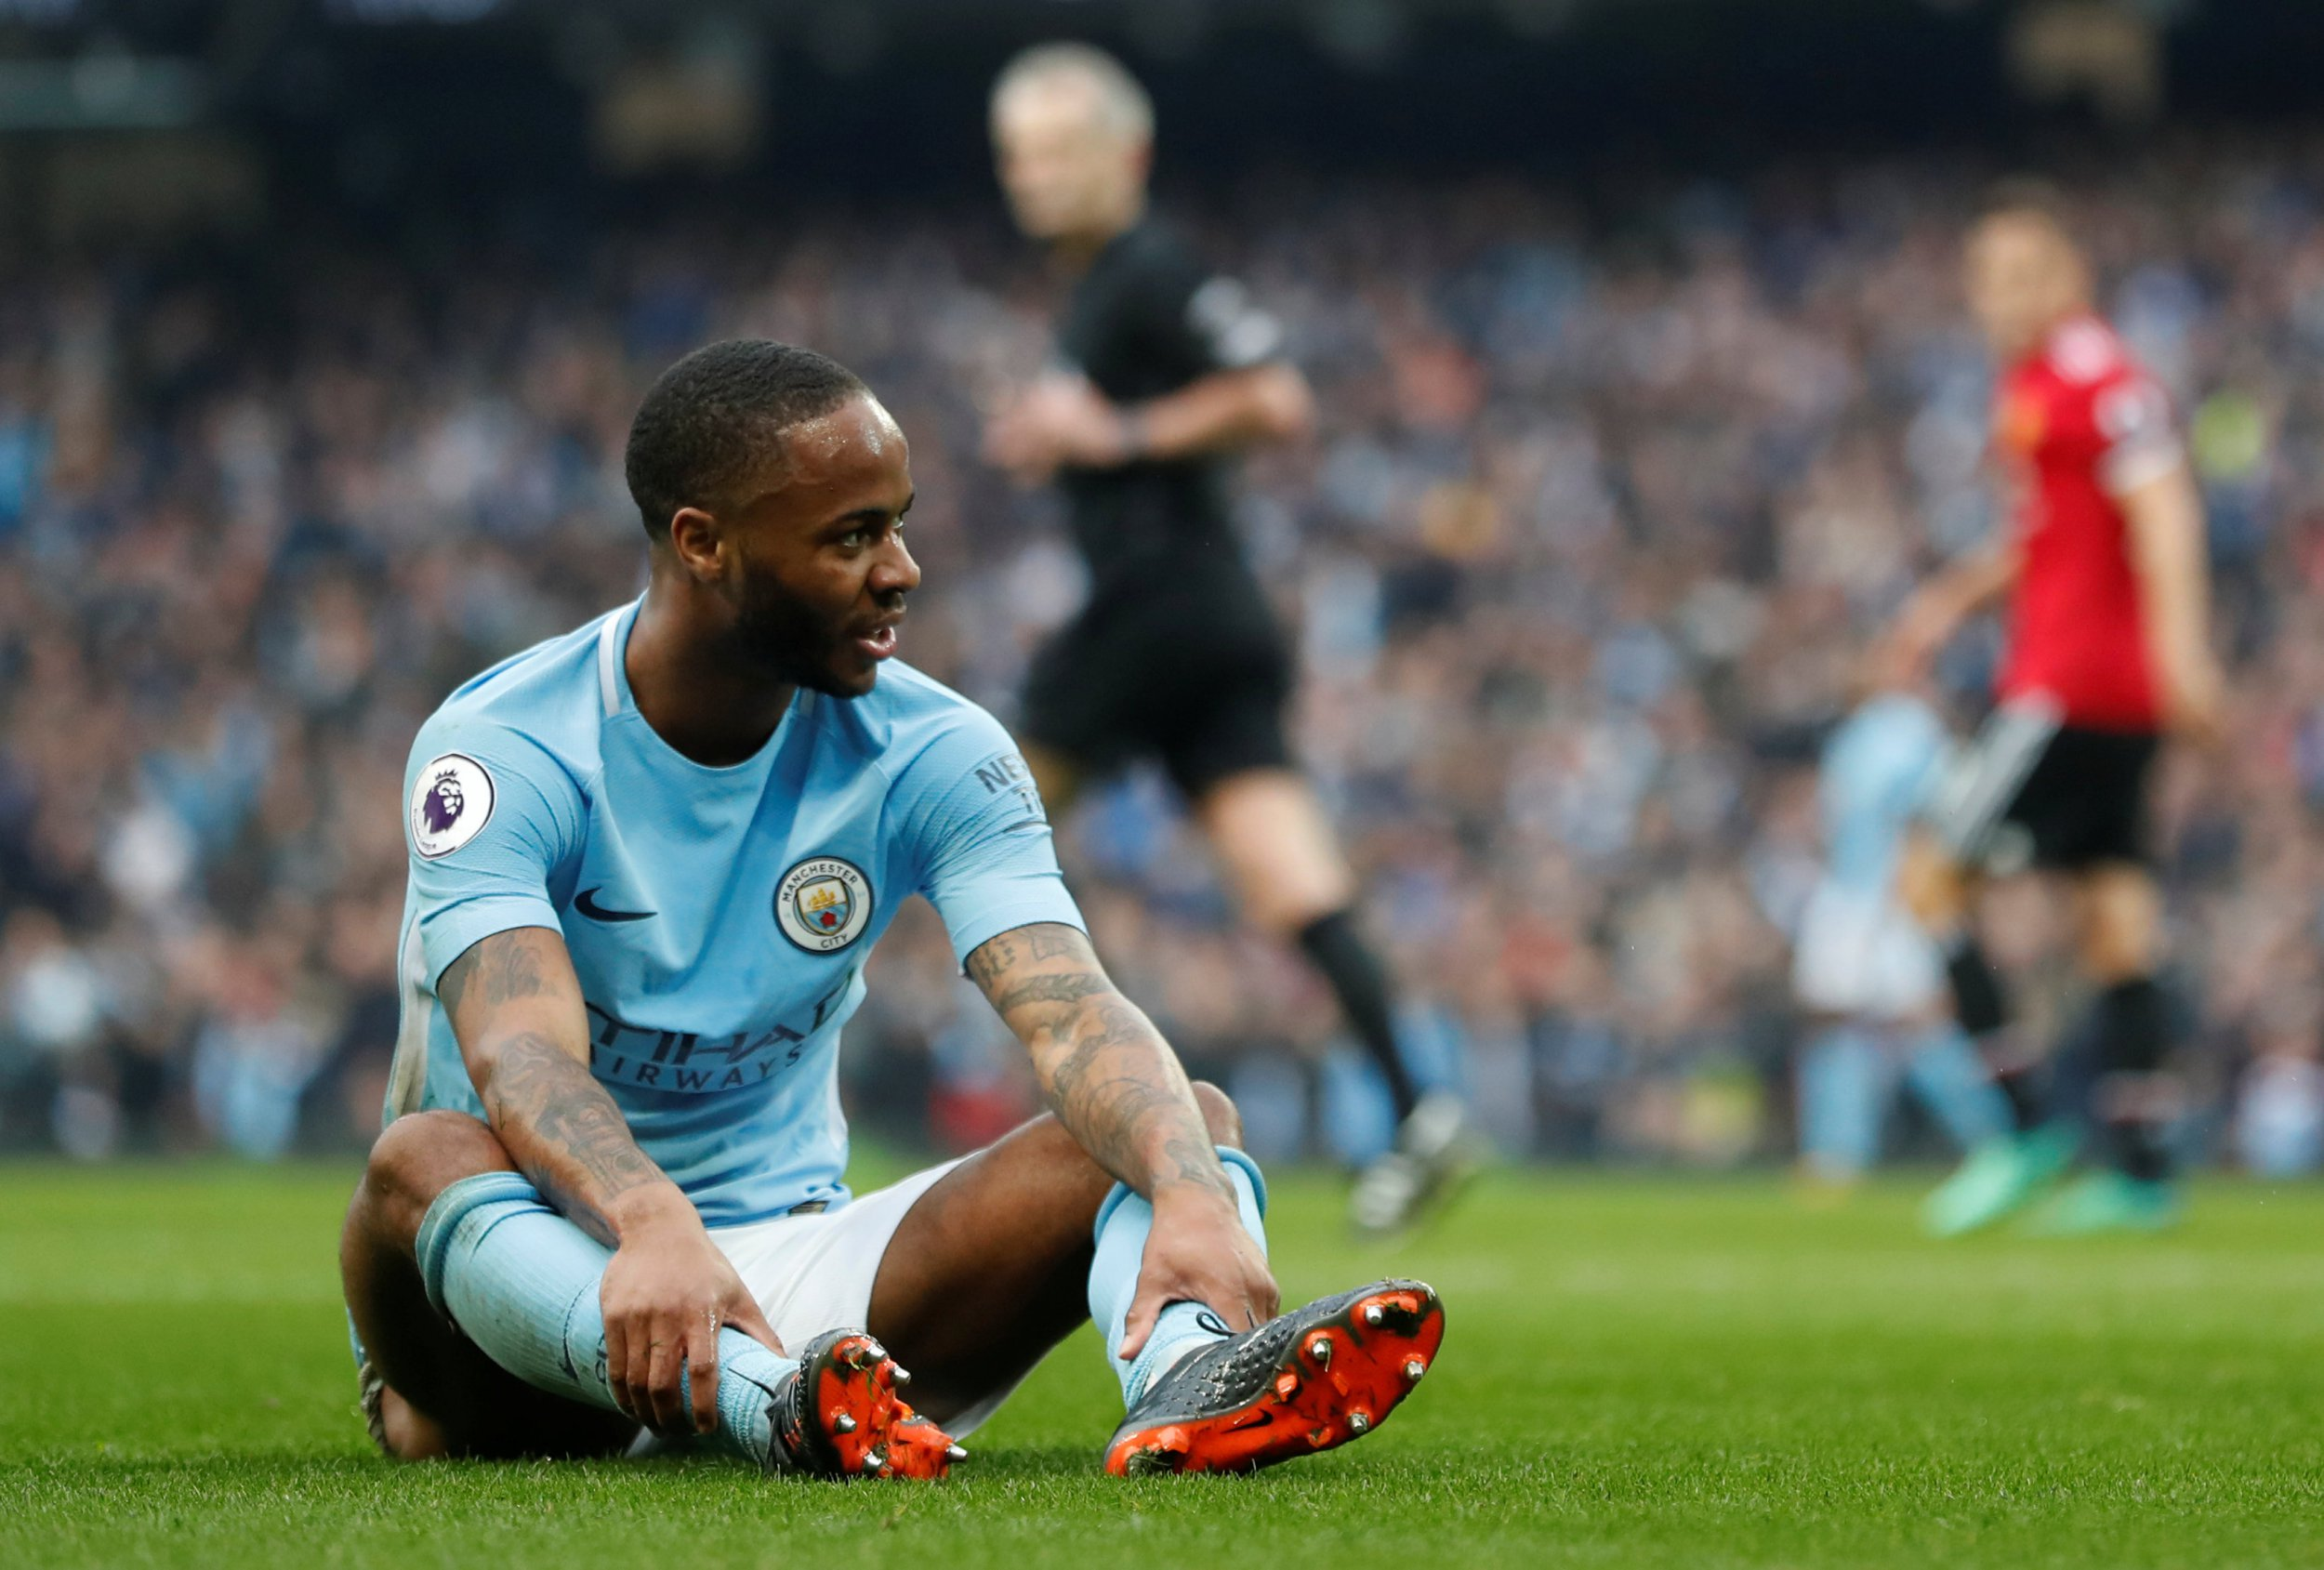 """Soccer Football - Premier League - Manchester City vs Manchester United - Etihad Stadium, Manchester, Britain - April 7, 2018 Manchester City's Raheem Sterling reacts after missing a chance to score REUTERS/Russell Cheyne EDITORIAL USE ONLY. No use with unauthorized audio, video, data, fixture lists, club/league logos or """"live"""" services. Online in-match use limited to 75 images, no video emulation. No use in betting, games or single club/league/player publications. Please contact your account representative for further details."""